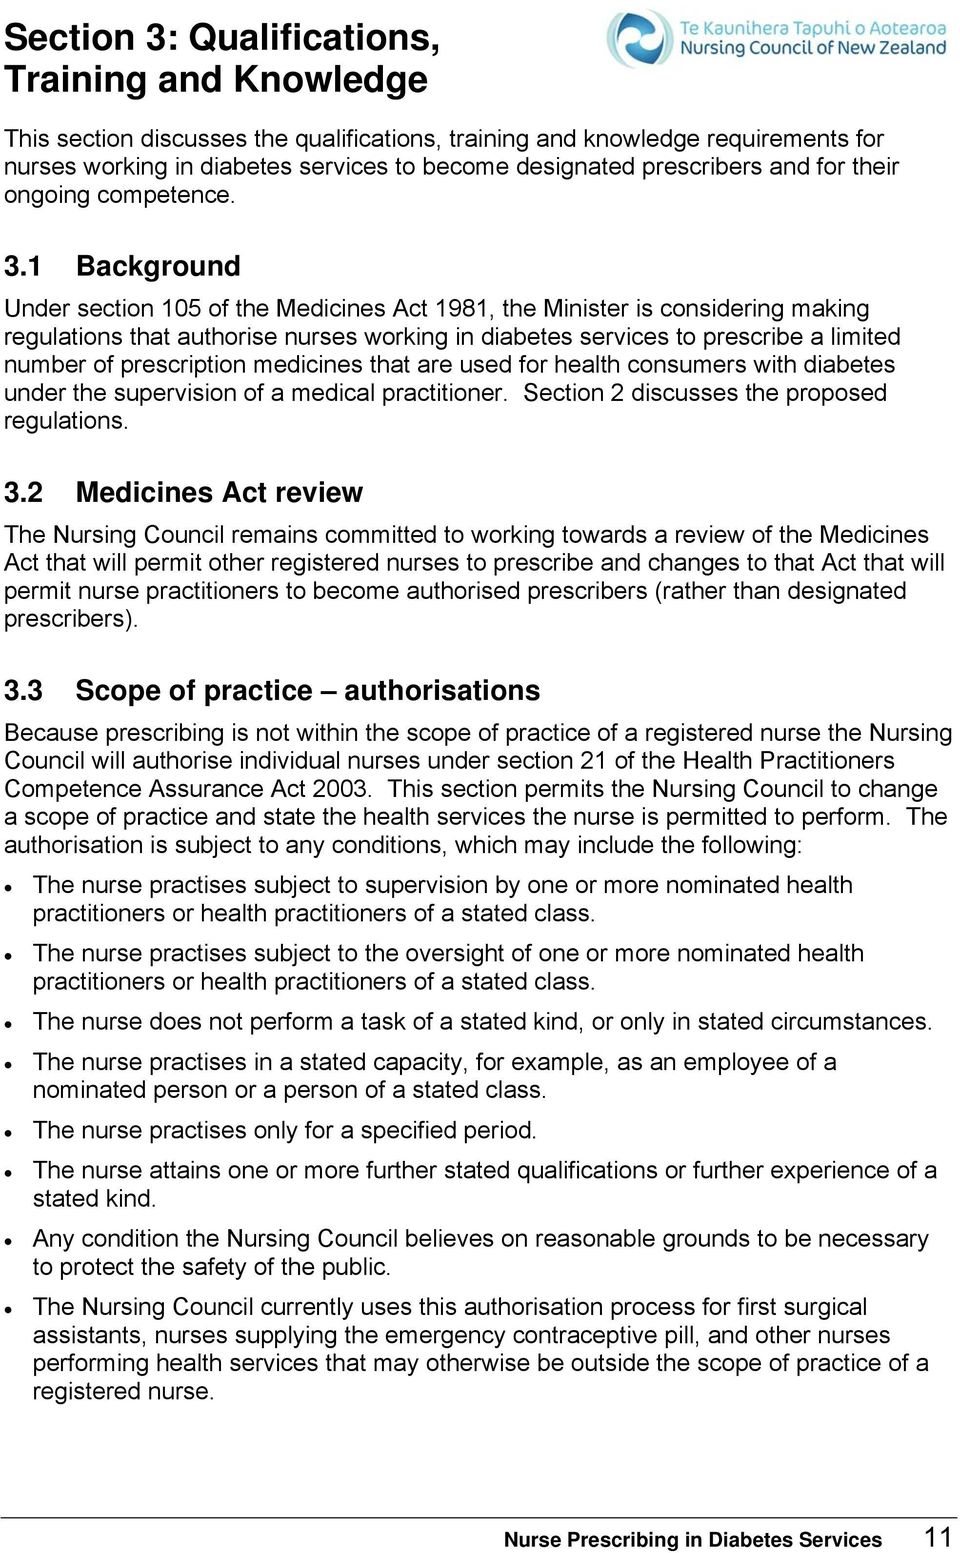 1 Background Under section 105 of the Medicines Act 1981, the Minister is considering making regulations that authorise nurses working in diabetes services to prescribe a limited number of